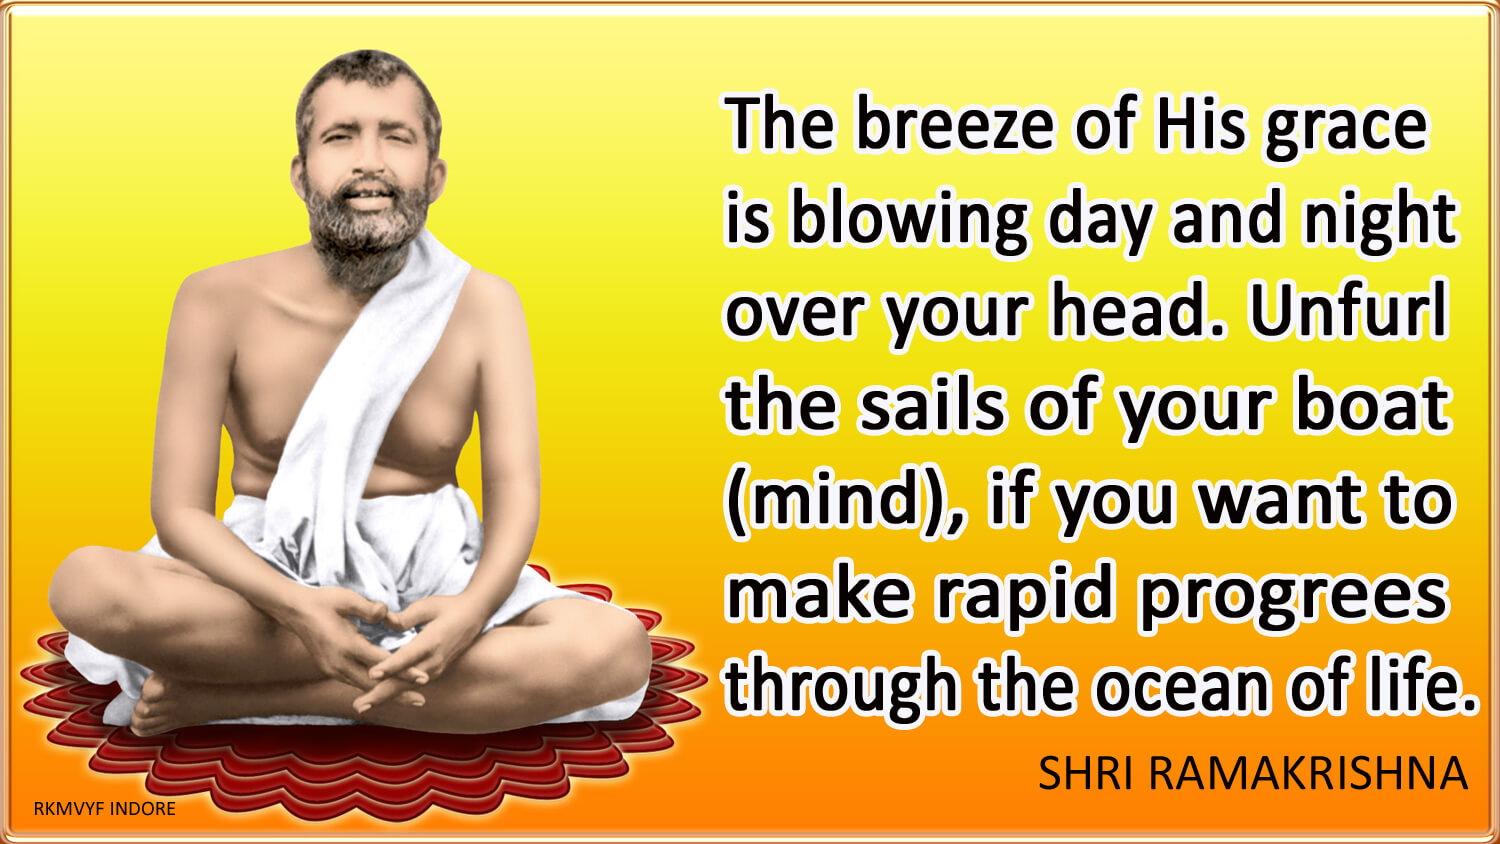 Inspirational Quote of Sri Ramakrishna Paramhans